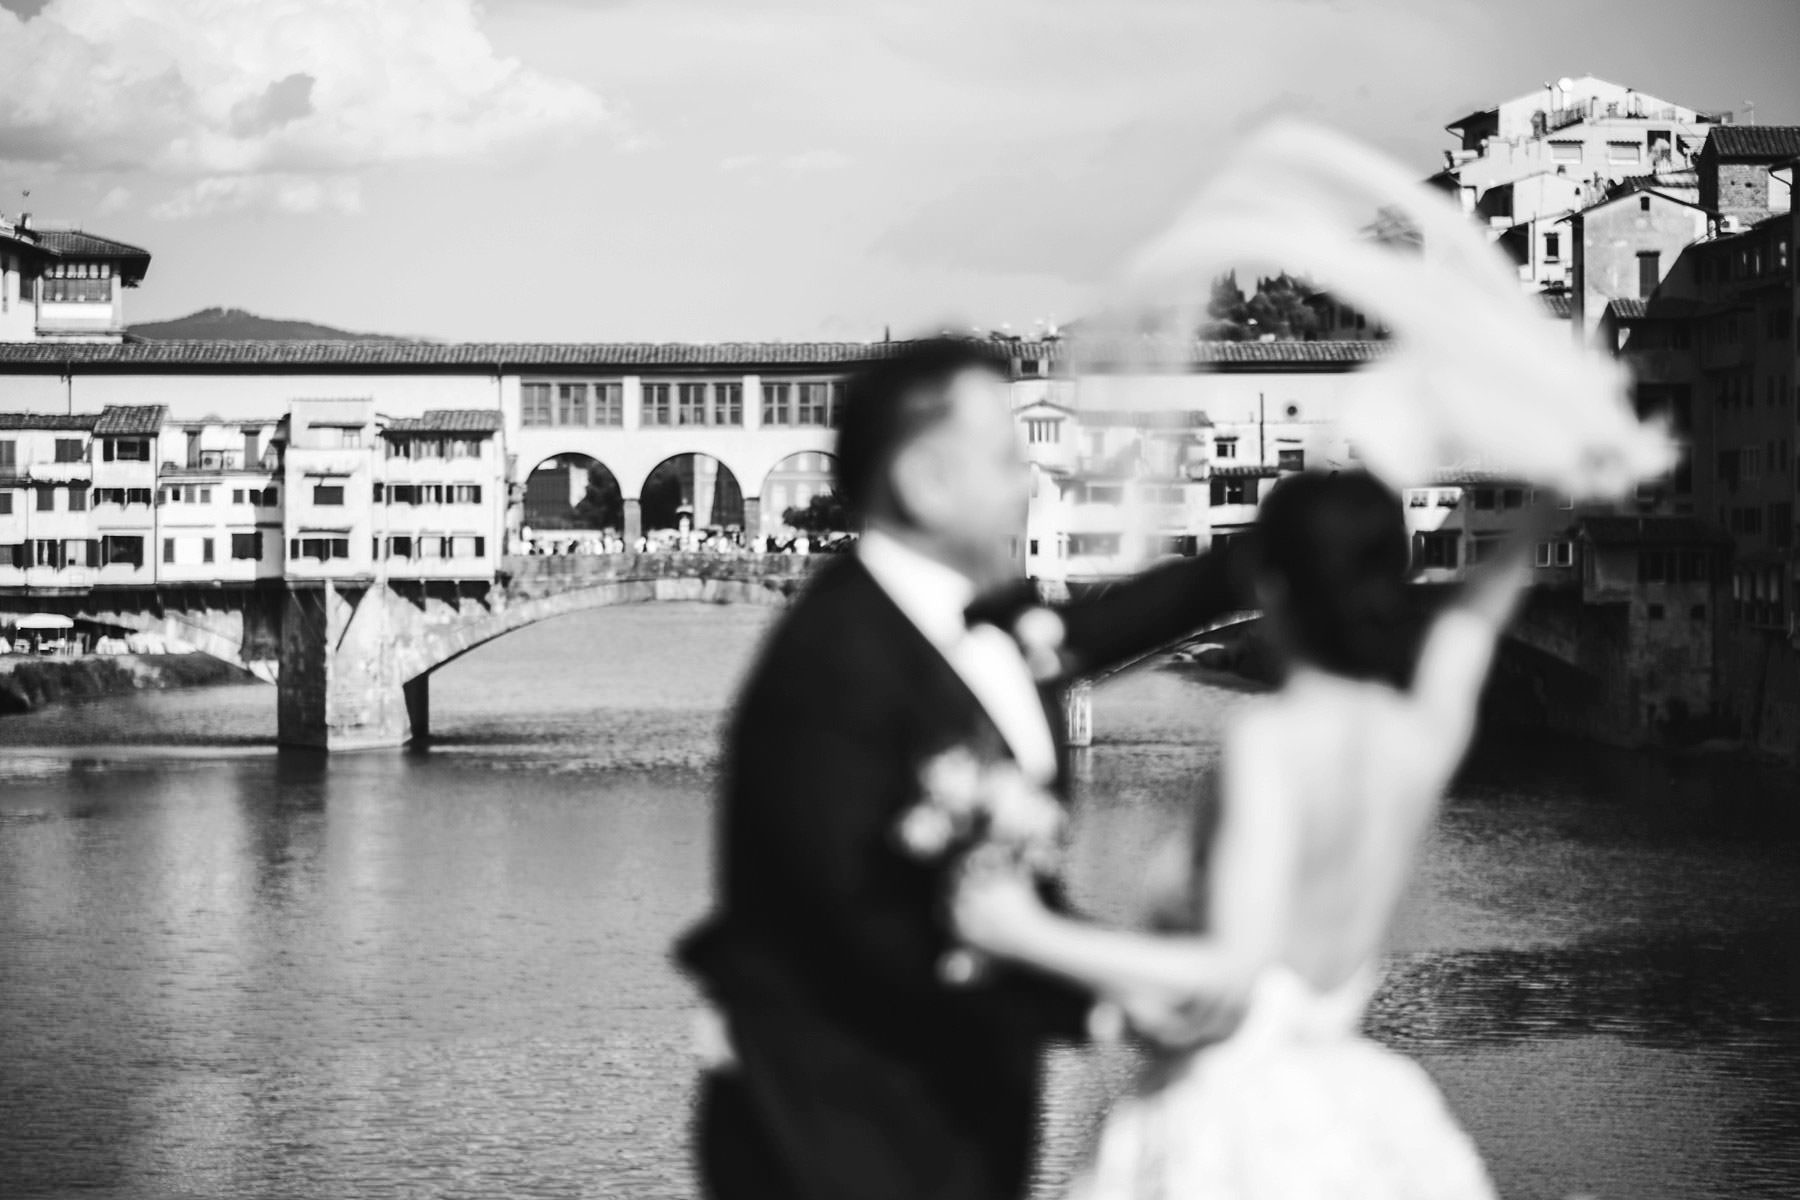 Gorgeous candid moment fro bride and groom near Ponte Vecchio in Florence